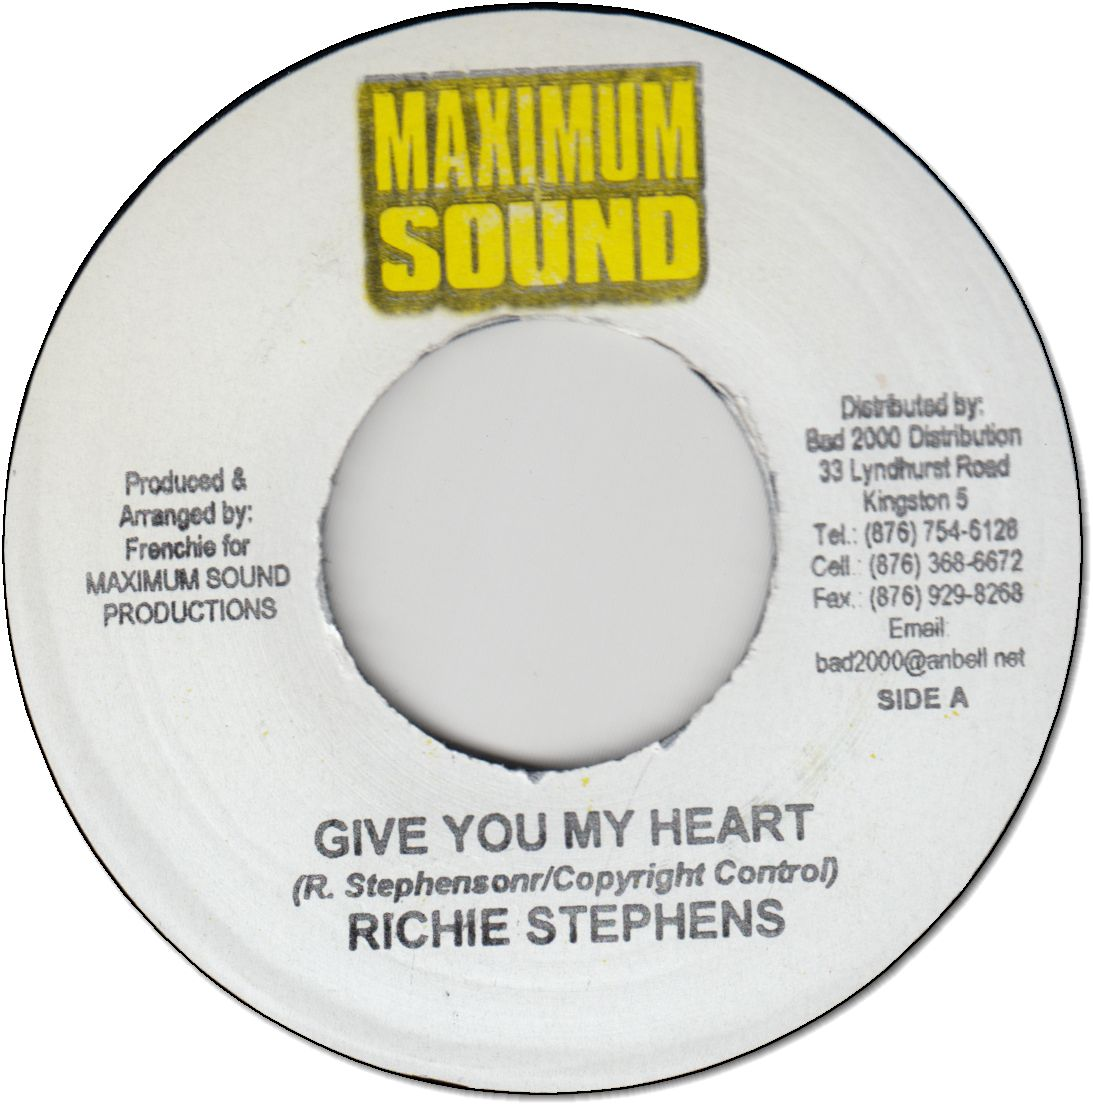 GIVE YOU MY HEART (VG+)